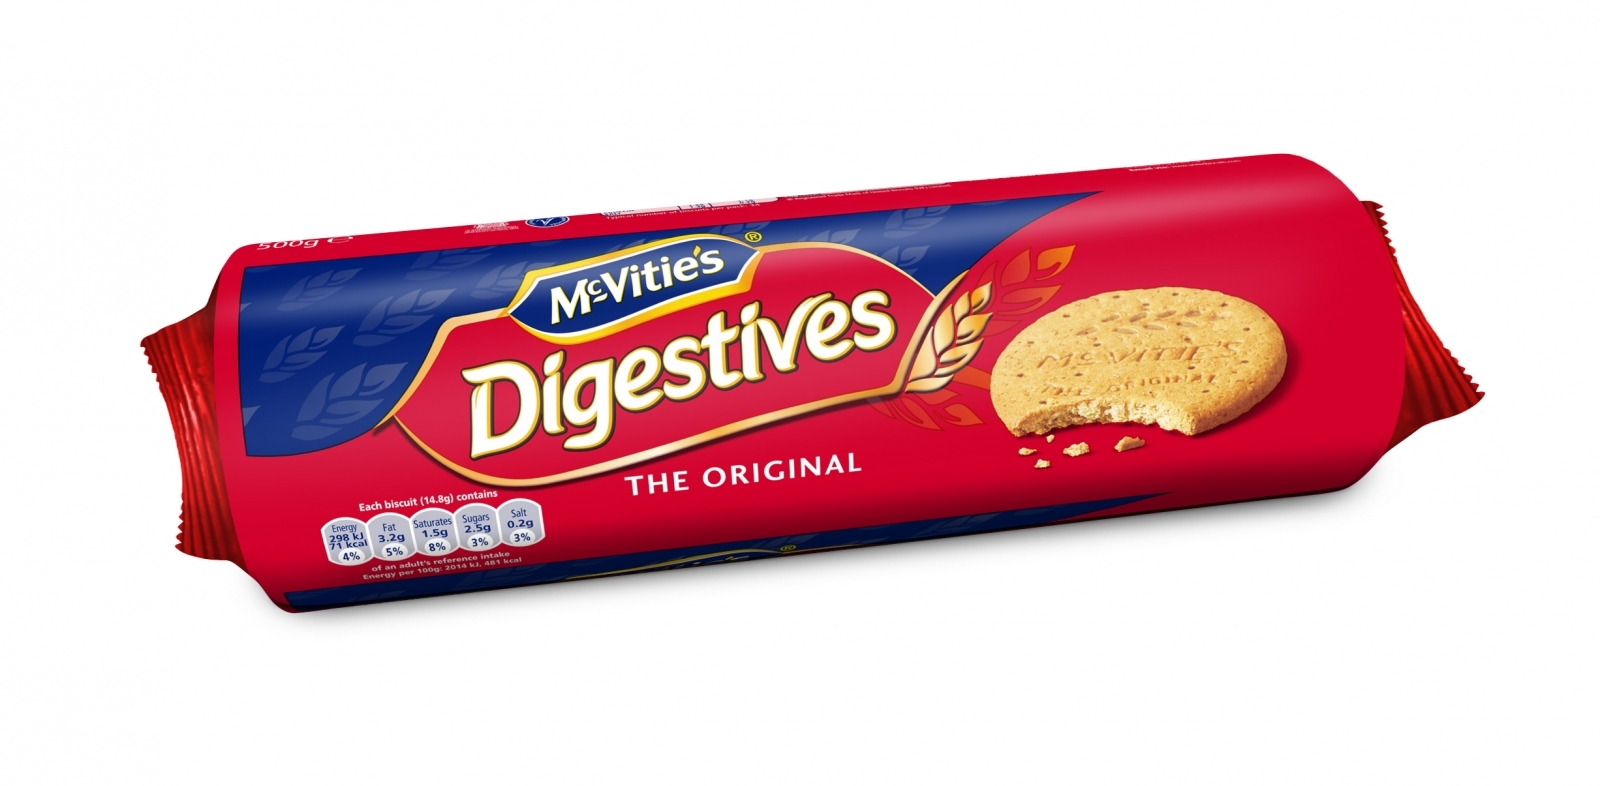 A 500g packet of Digestives biscuits will shrinking by 100g due to rising costs in the wake of the UK's Brexit vote